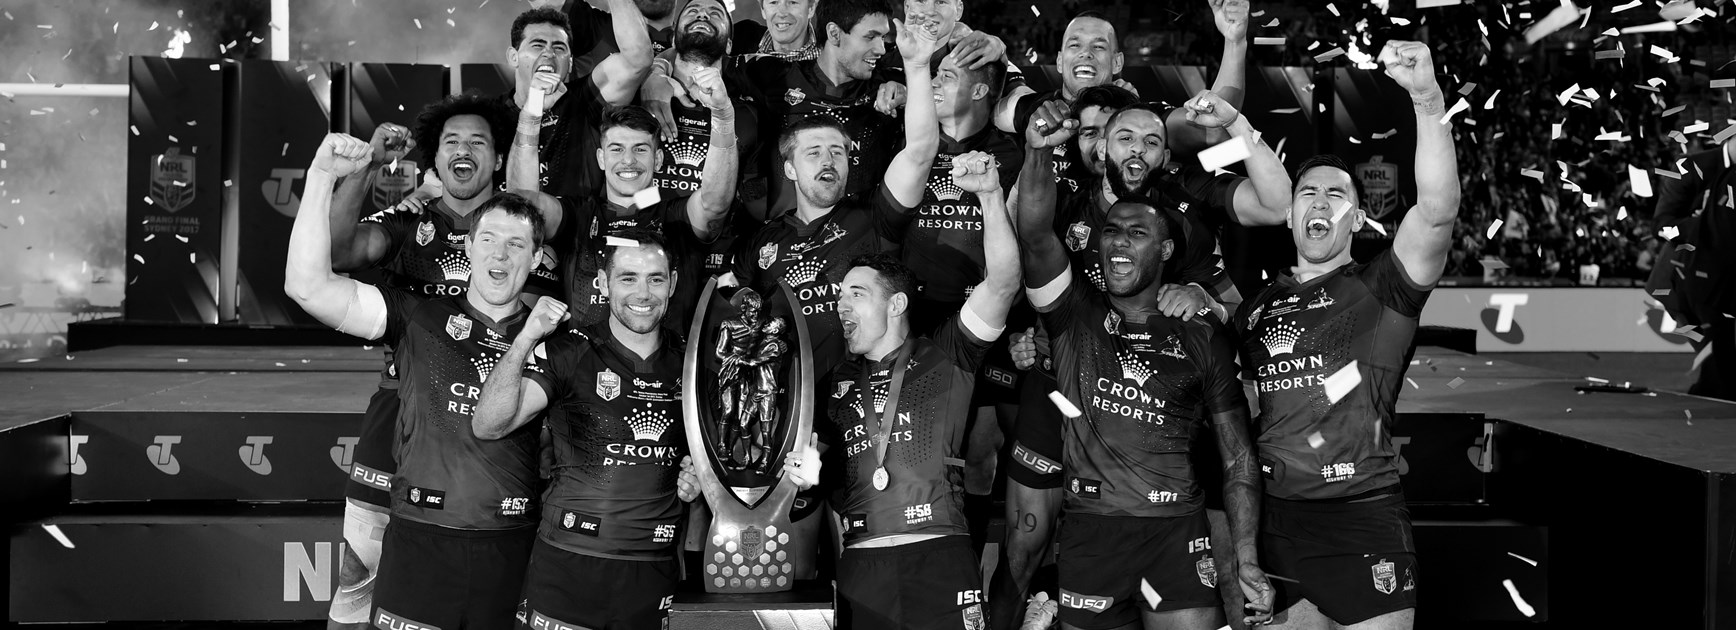 Relive our 2017 premiership